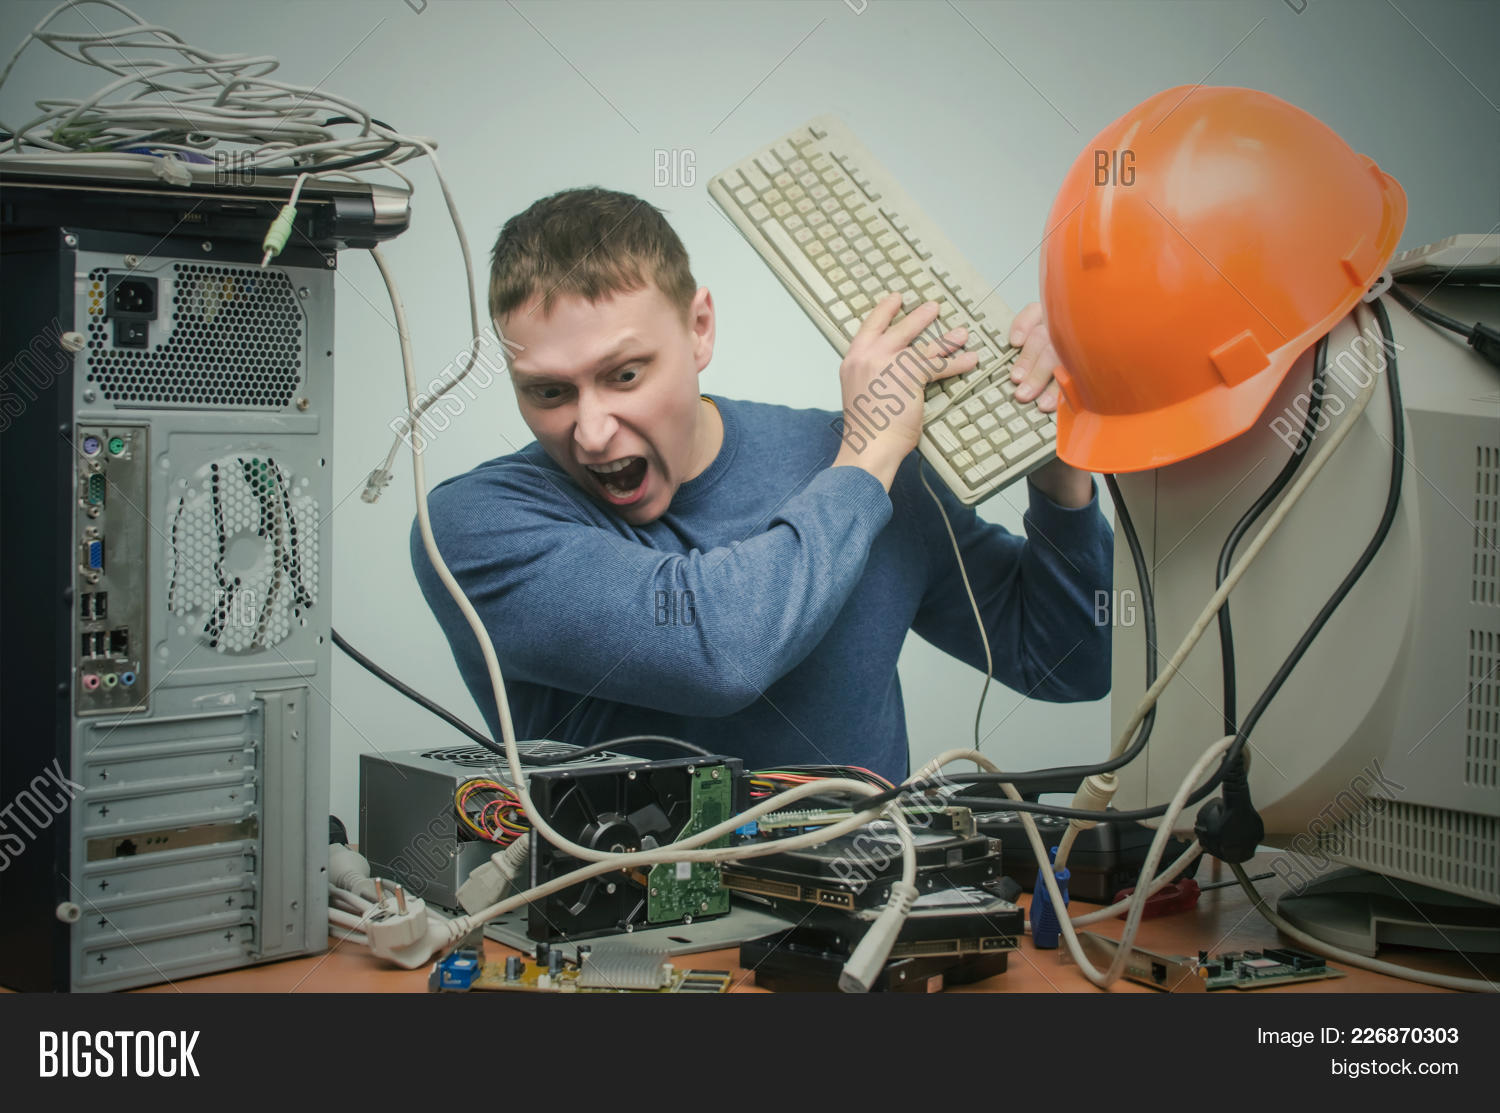 Overworked Tired Angry Image & Photo (Free Trial) | Bigstock